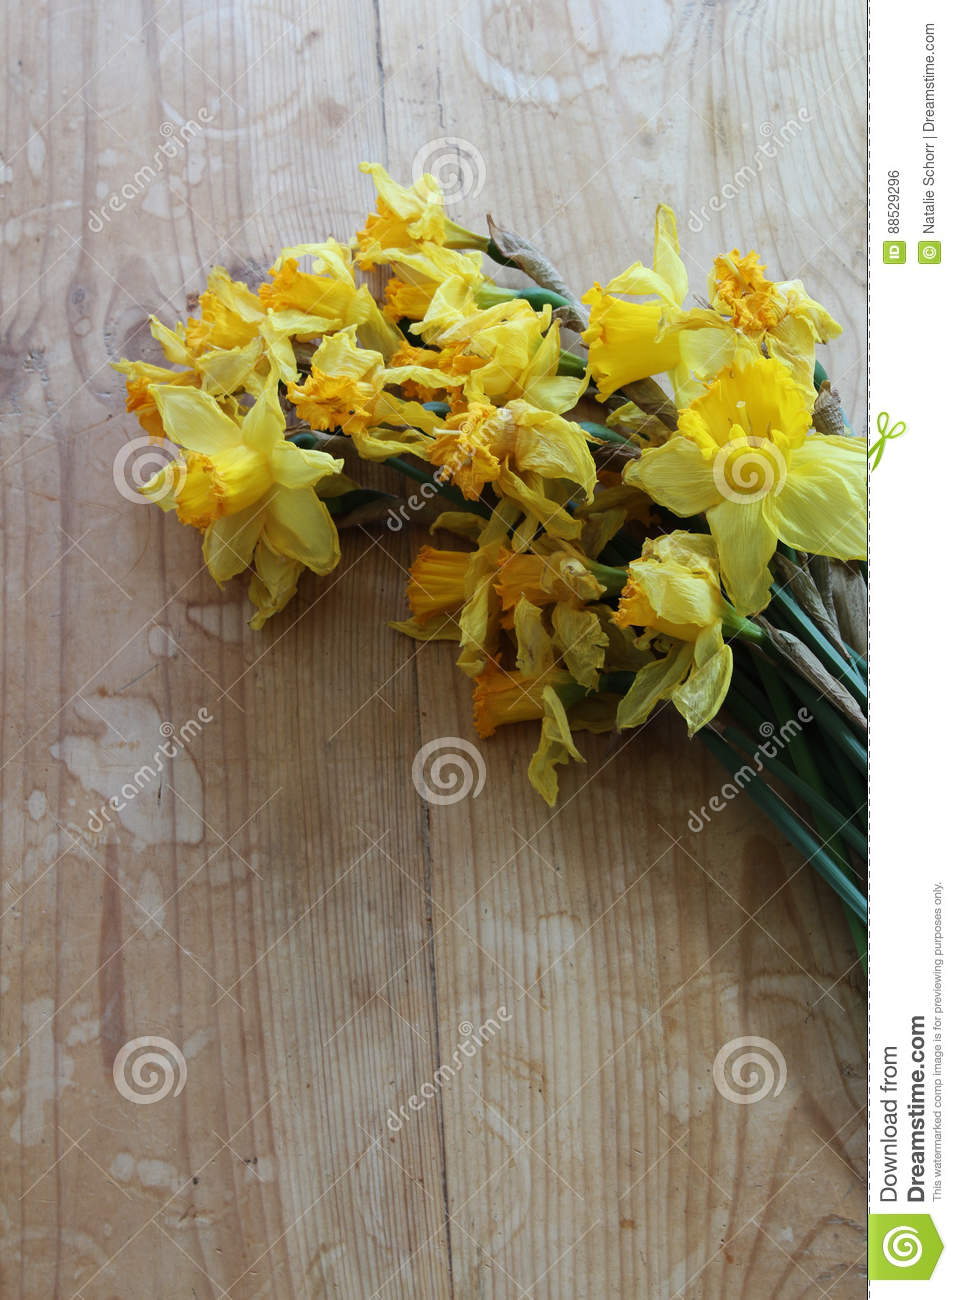 Wilted daffodil flowers on a wooden table stock photo image of royalty free stock photo izmirmasajfo Images